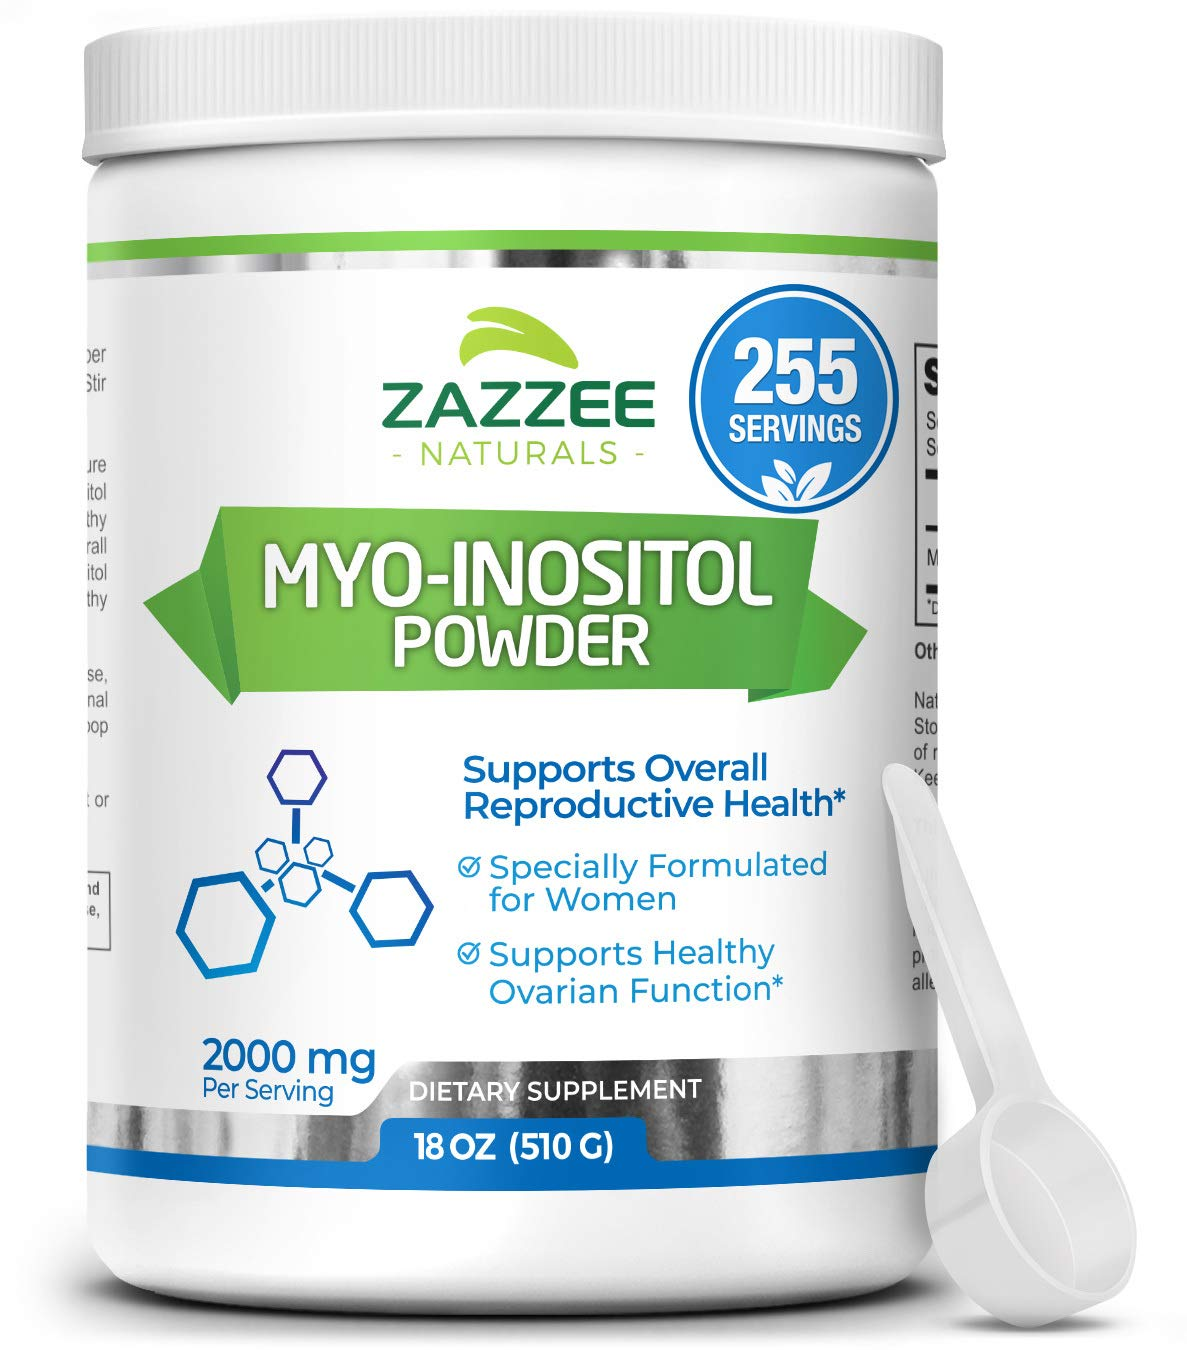 Zazzee Myo-Inositol Powder, 255 Servings, 18 Ounces (510 g), 2000 mg per Serving, Includes Free Scoop for Exact Dosage, 100% Pure, Vegan and Non-GMO by Zazzee